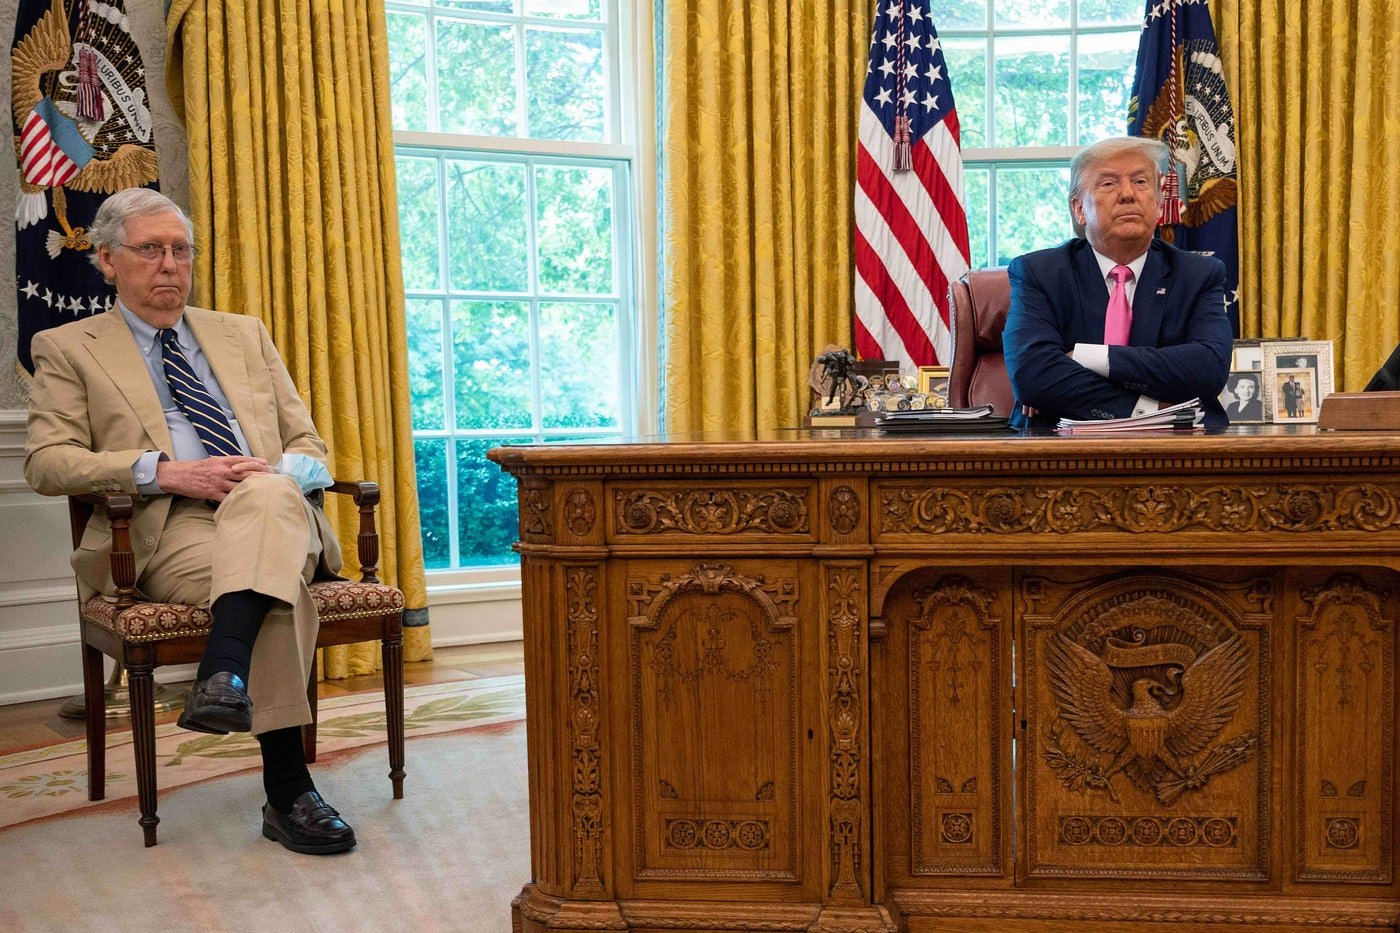 President Donald Trump speaks with Senate Majority Leader Mitch McConnell in the Oval Office.